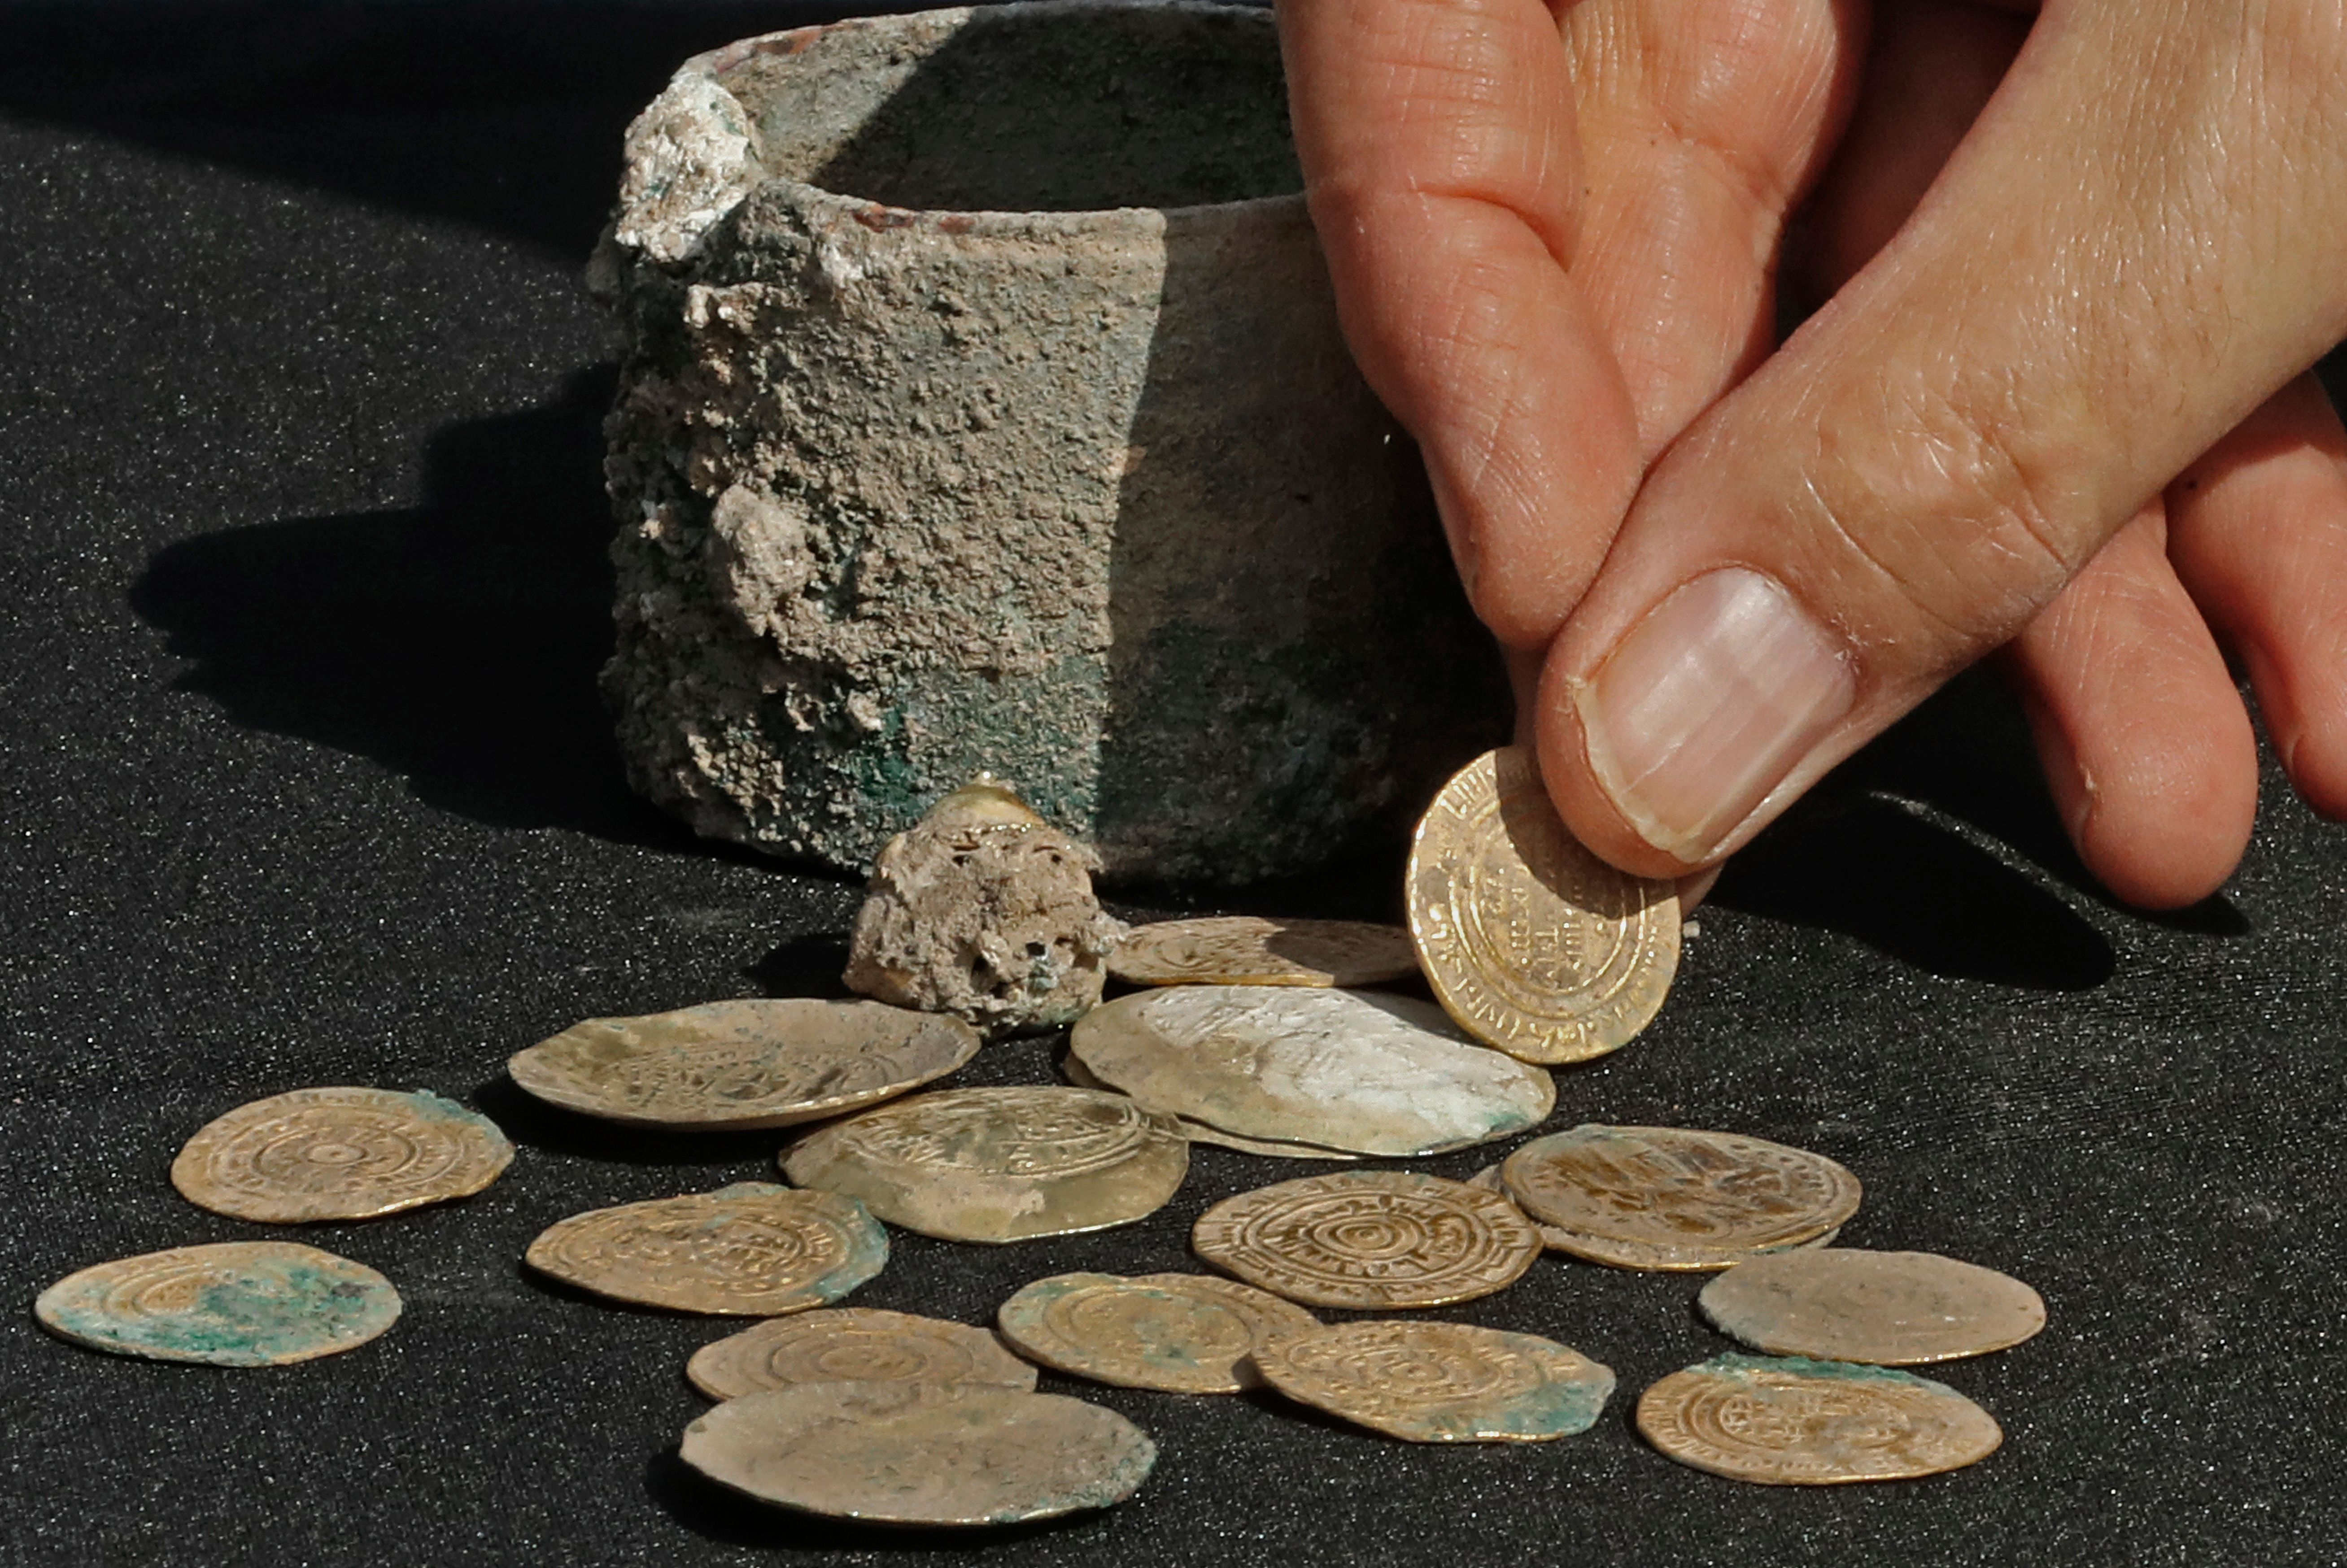 crusades coin found in middle east